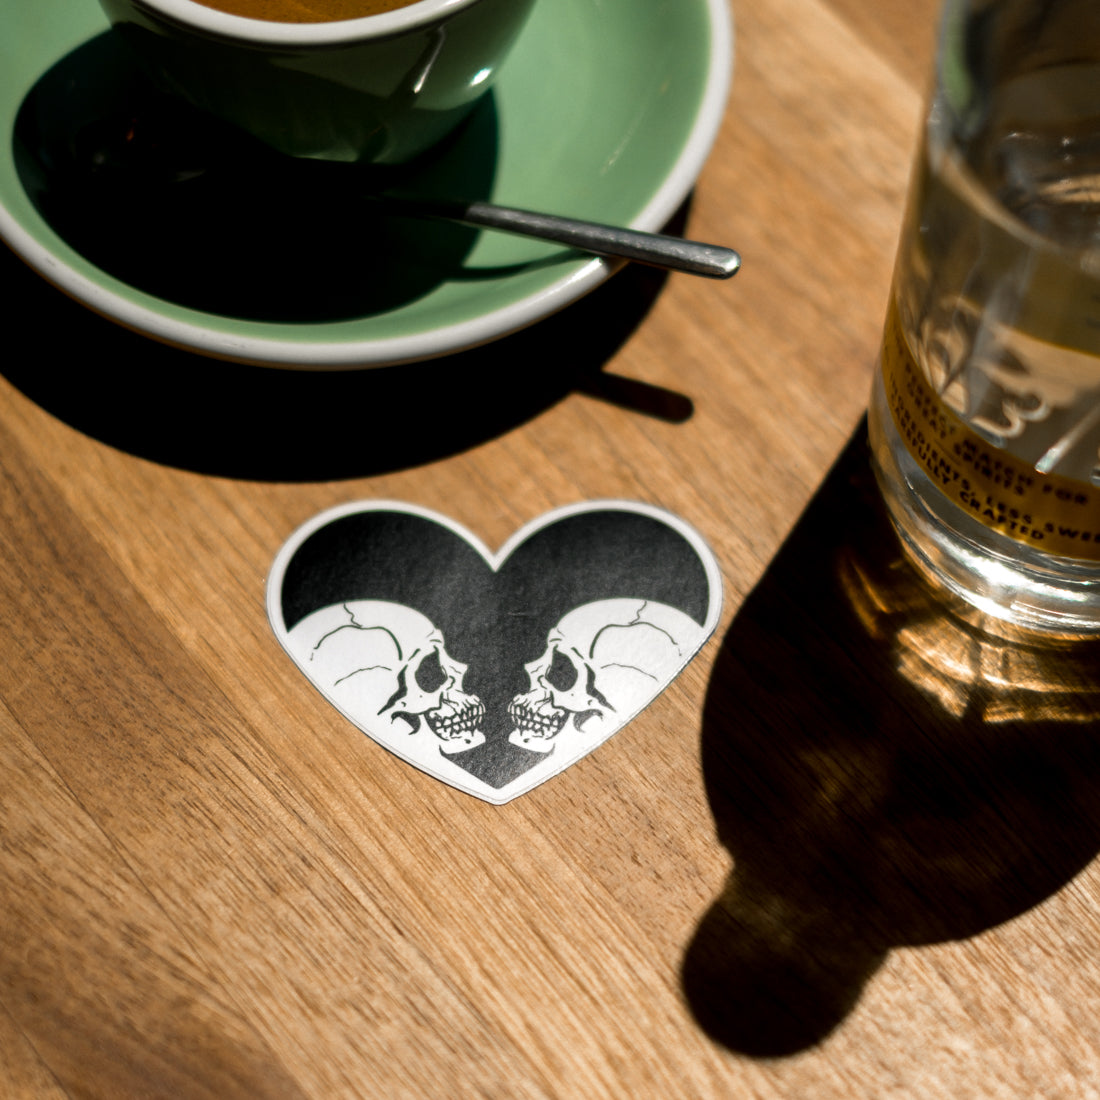 Endemic Ink Mirrored Love Sticker